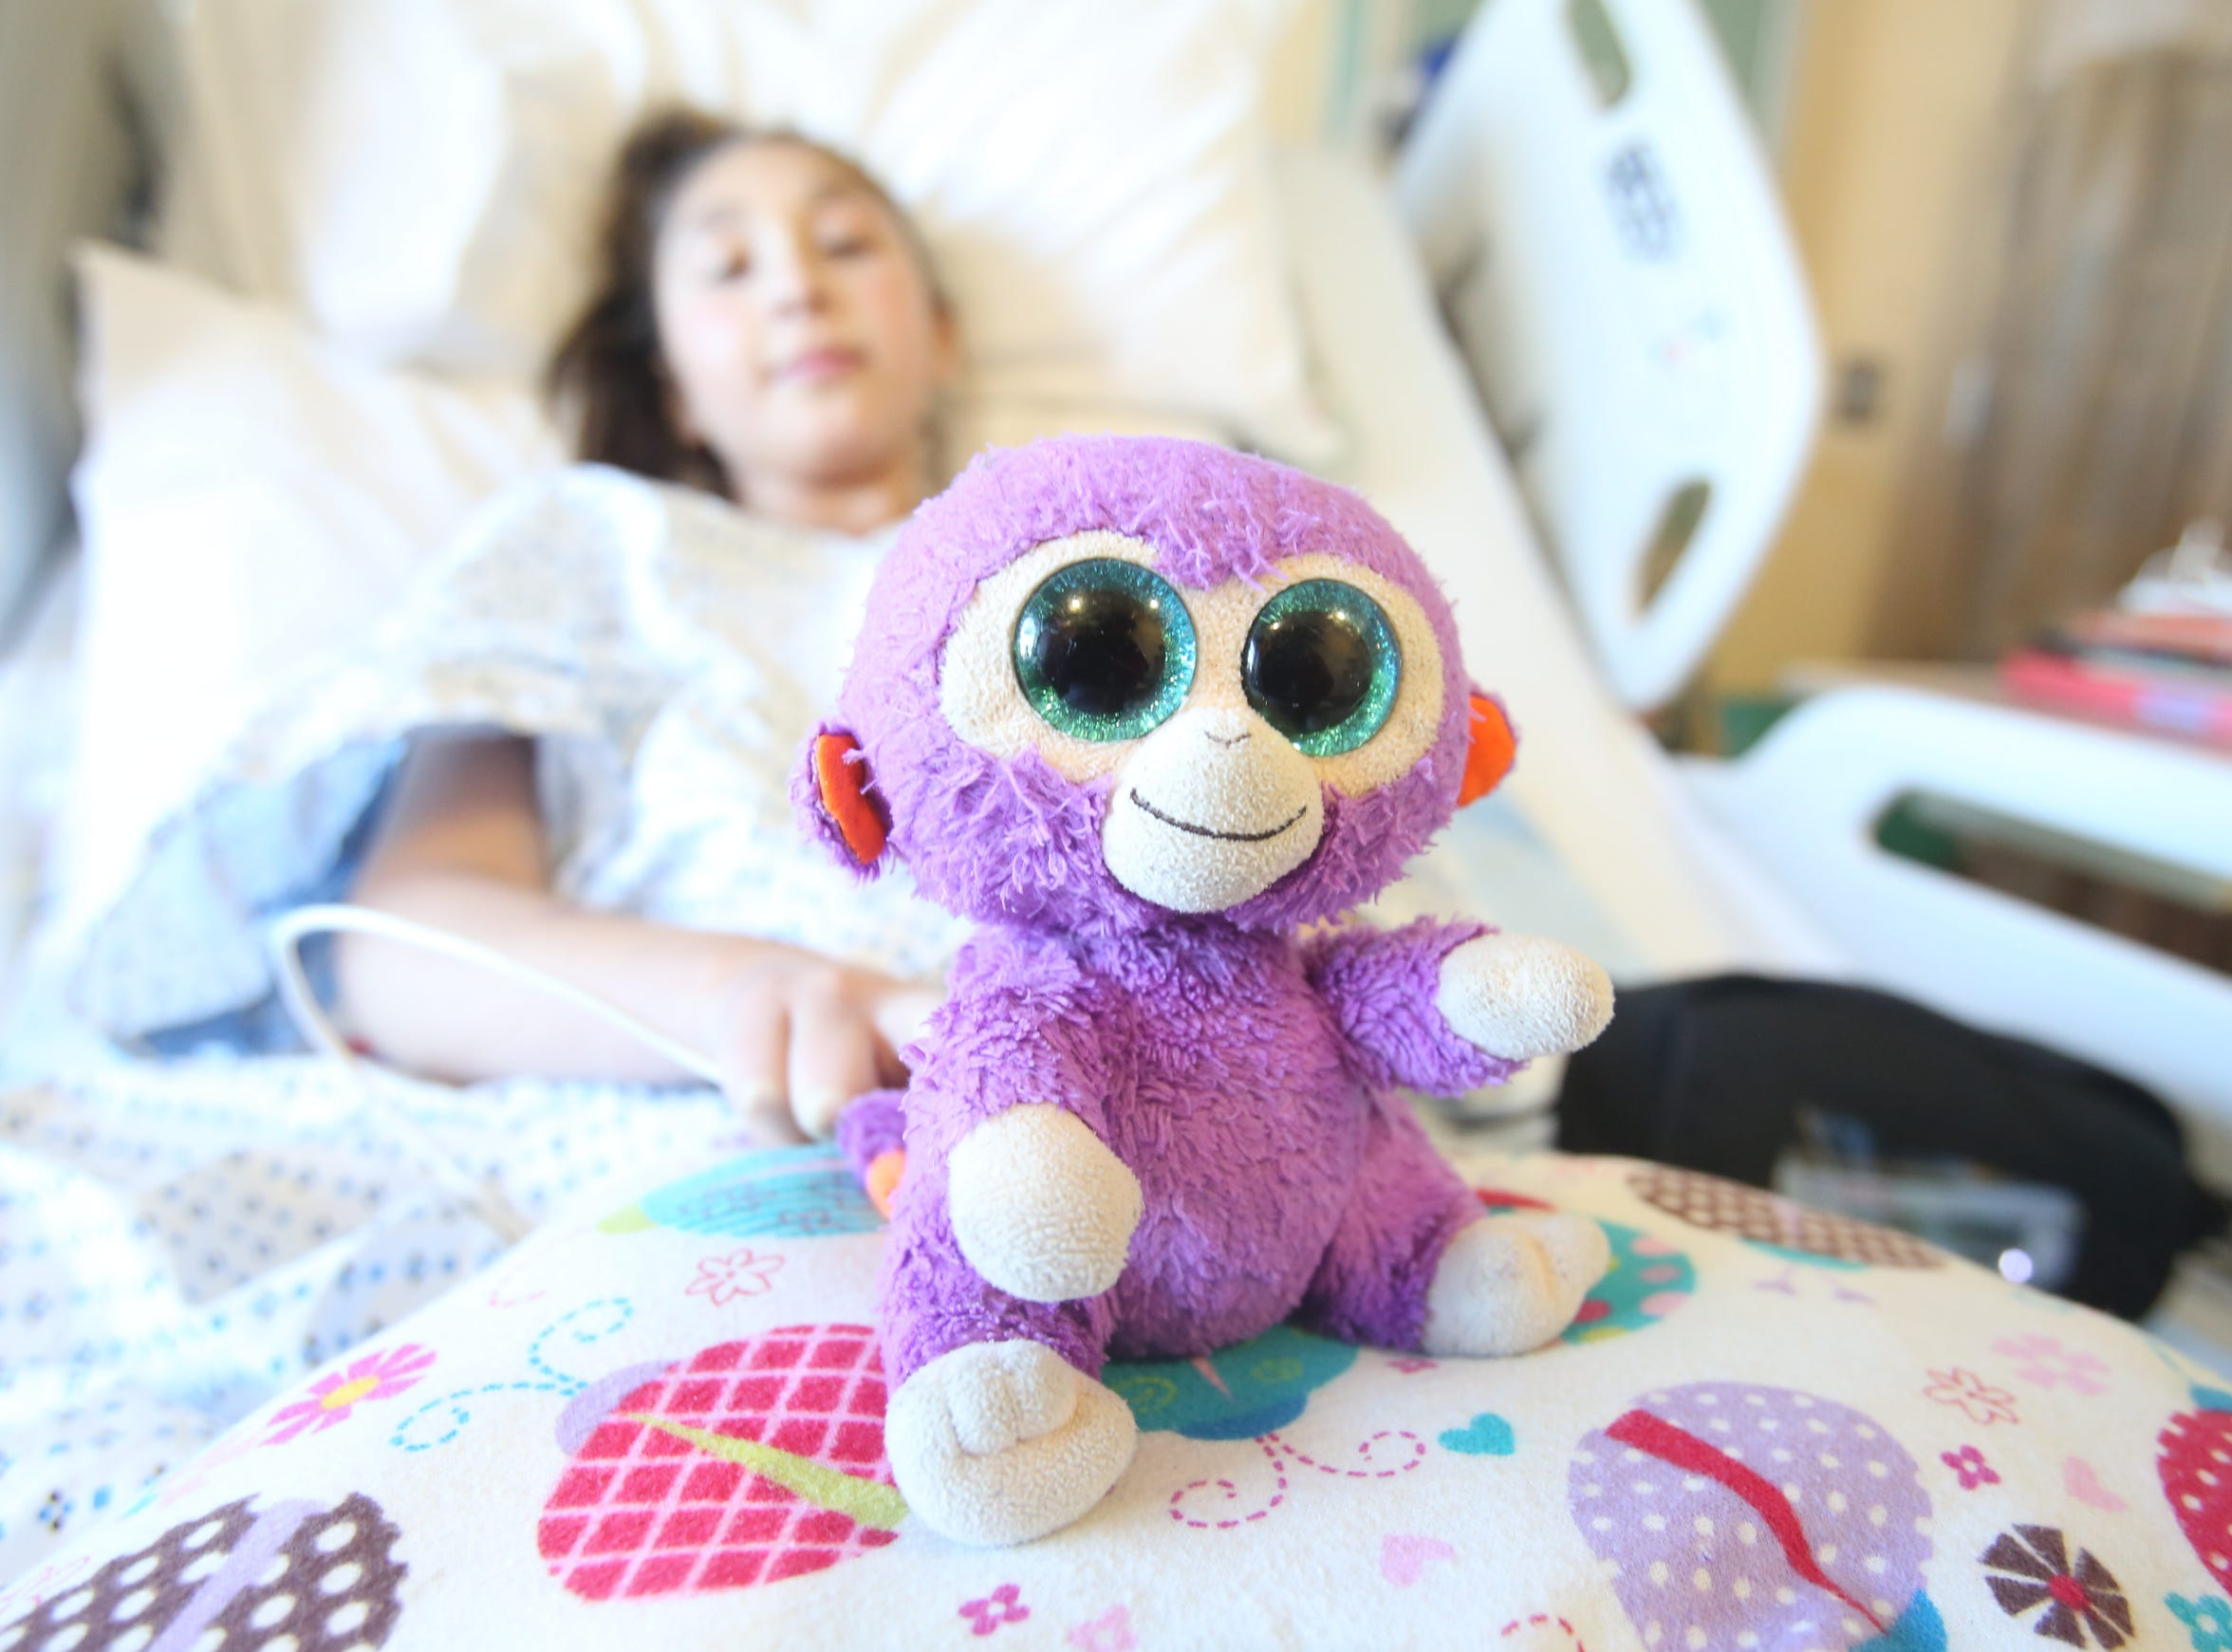 Grape, the stuffed monkey sits in the bed with Isabella Munoz, 12, at Morgan Stanley Children's Hospital in Manhattan Jan. 25, 2018. Bella has been in the hospital since Jan. 6, awaiting open-heart surgery, and the stuffed monkey has never left her bedside since being diagnosed with a heart condition two years ago.